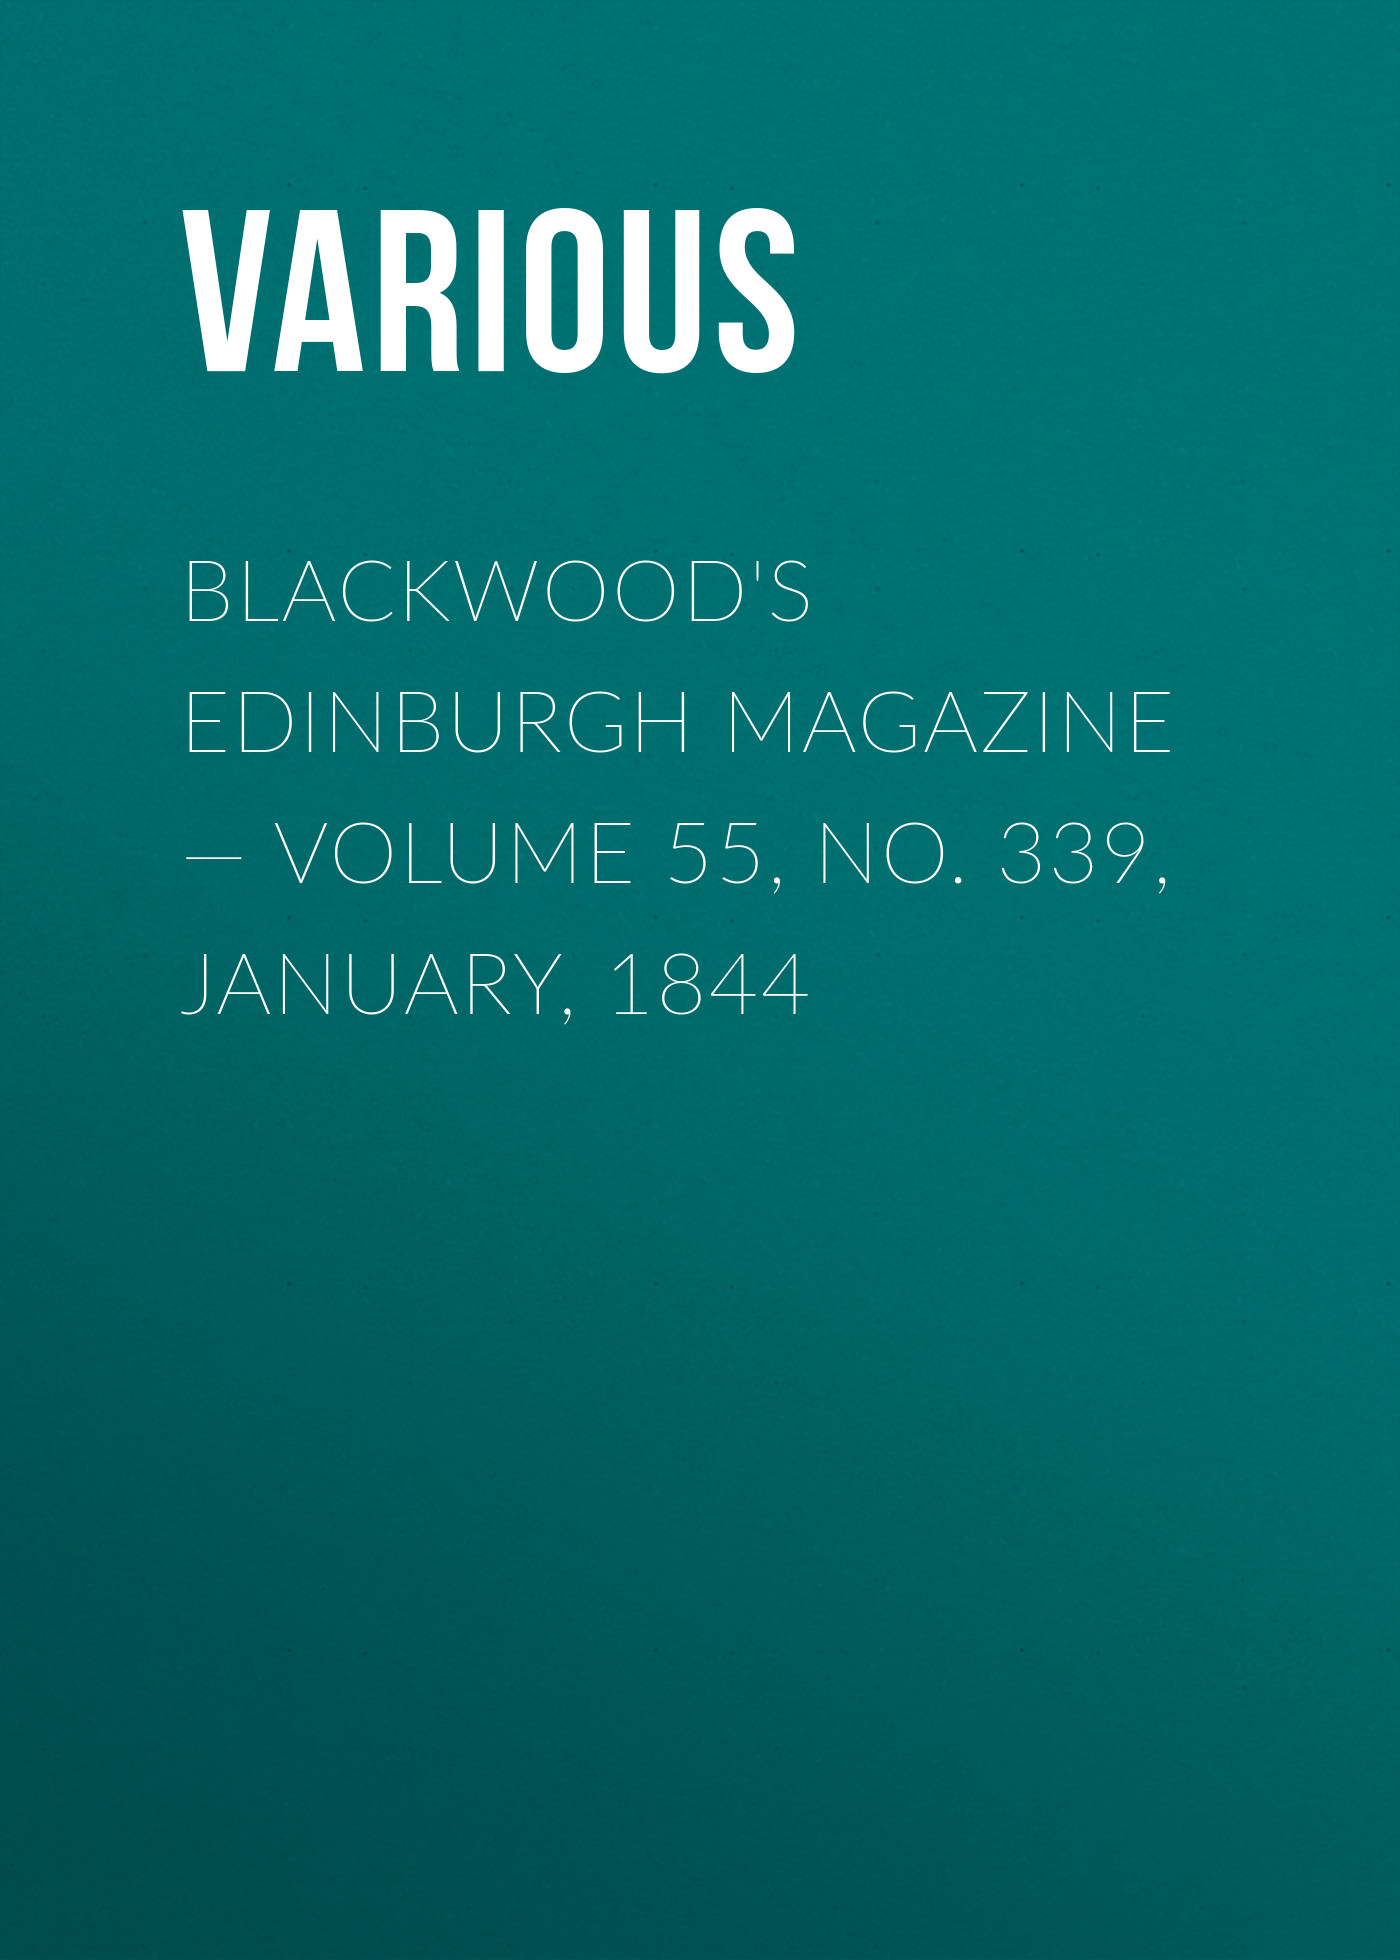 Blackwood's Edinburgh Magazine — Volume 55, No. 339, January, 1844